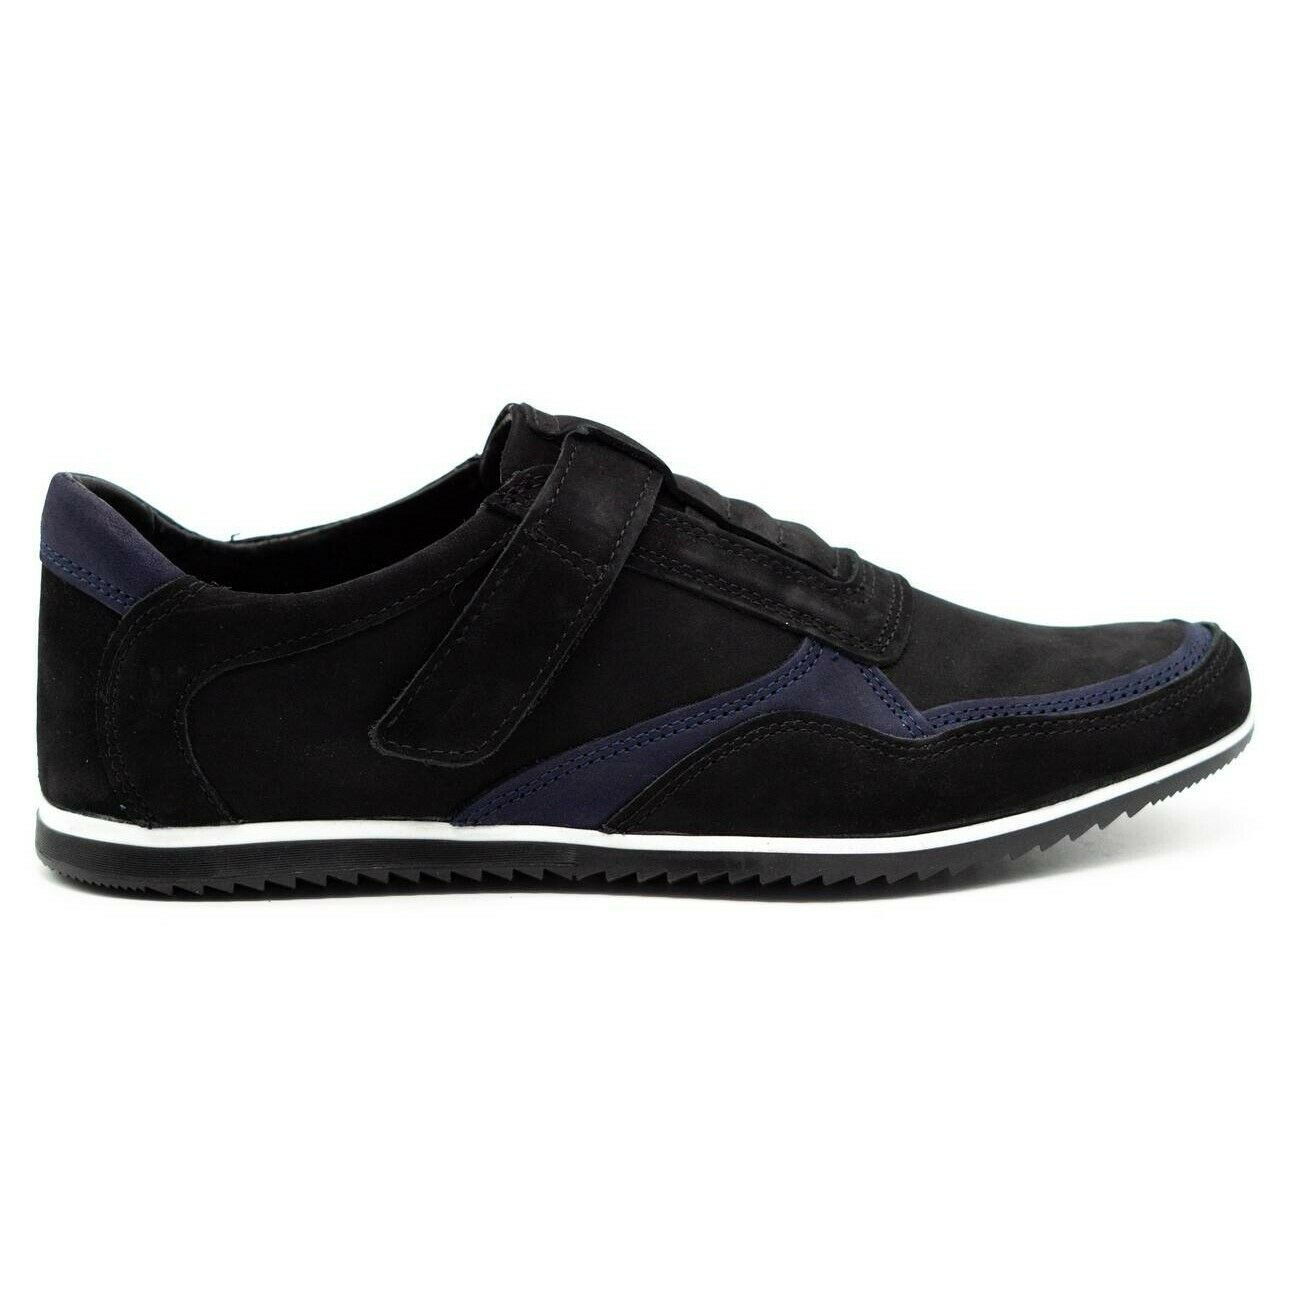 Polbut Men's casual leather shoes 2102/2 black with navy blue